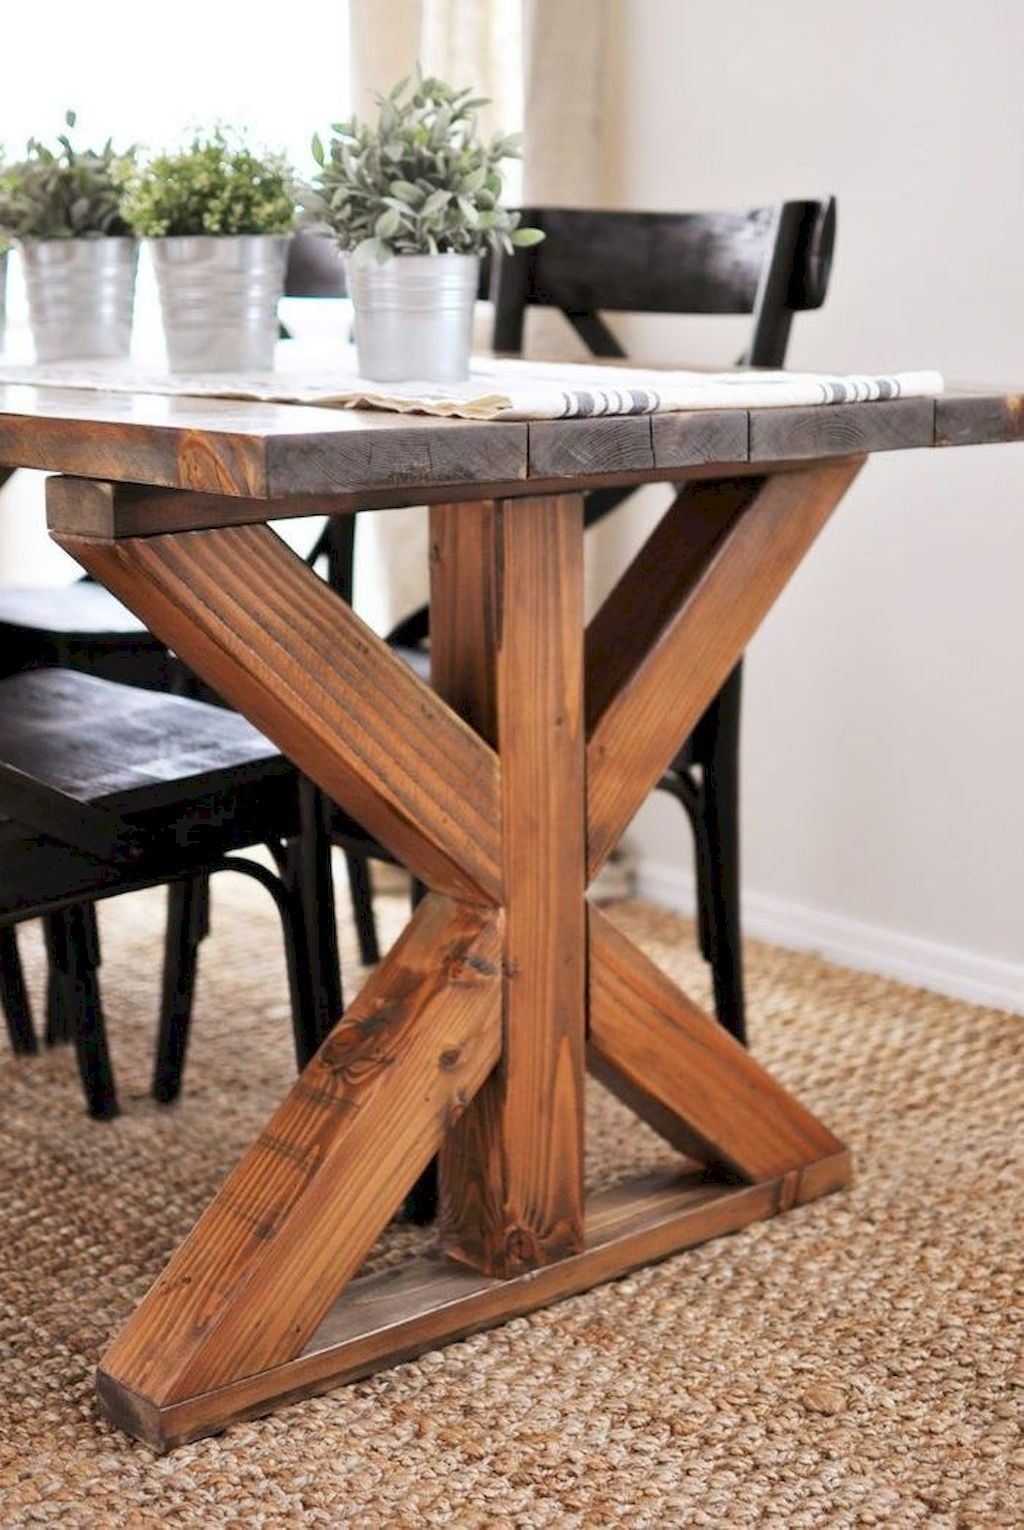 60 dining table inspirations for diy farmhouse concept dining table farmhouse table plans on farmhouse kitchen table diy id=45191